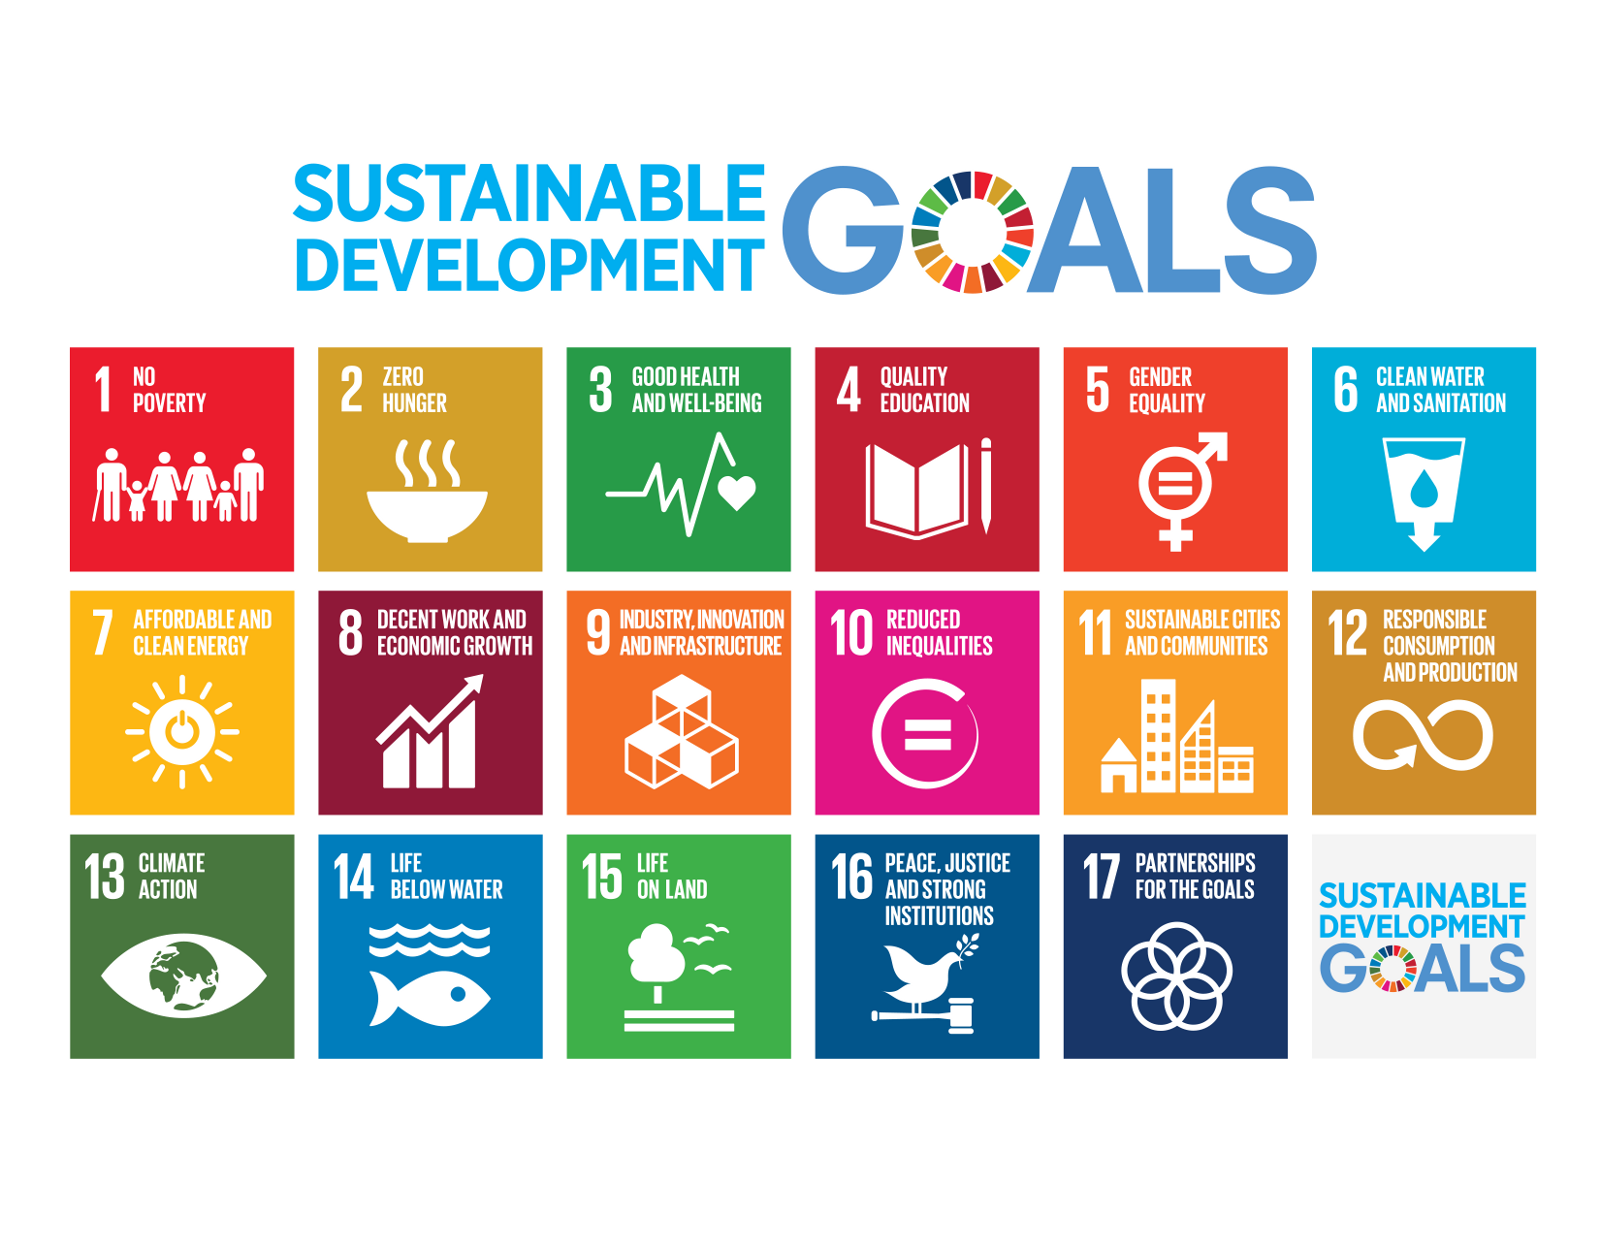 /maximize-your-hackathon-impact-by-adopting-the-un-global-goals-for-sustainable-development-a67f9f95159e feature image